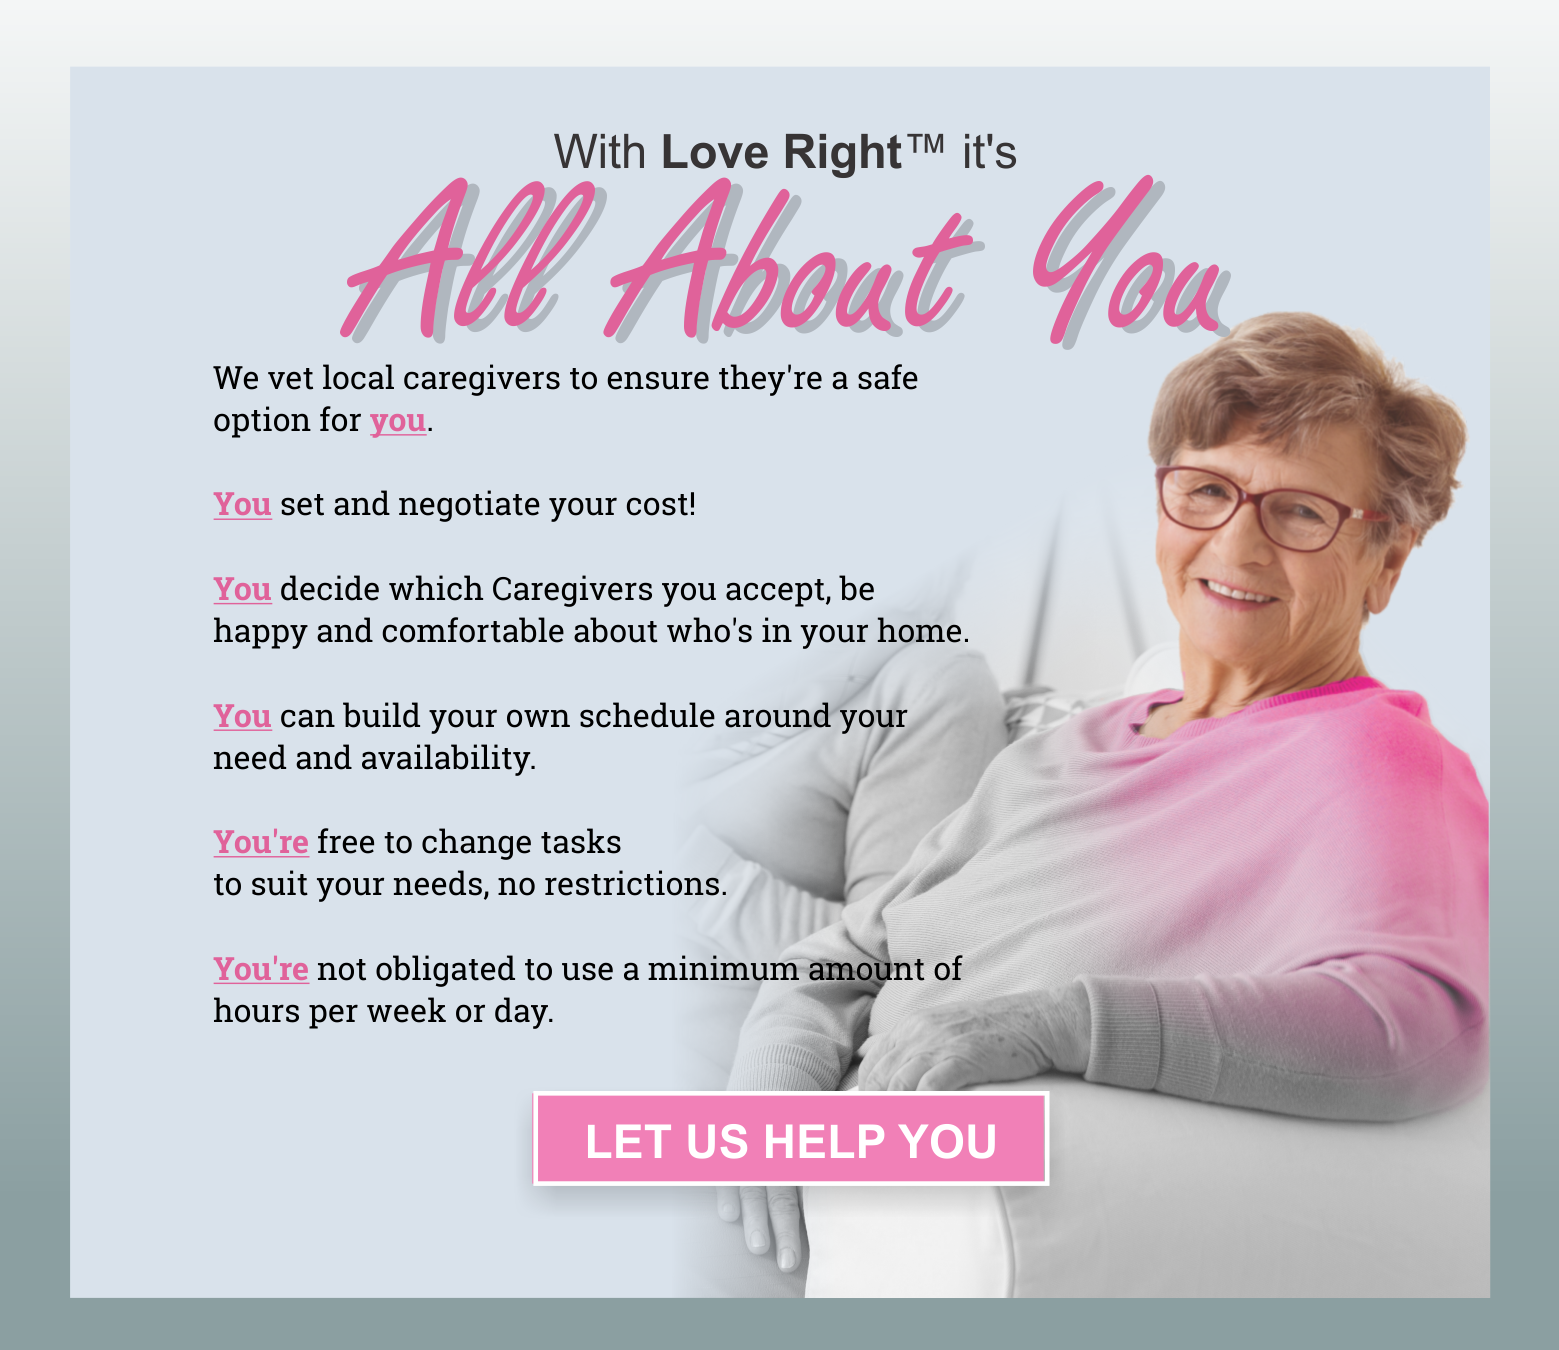 All ABout You - Clients